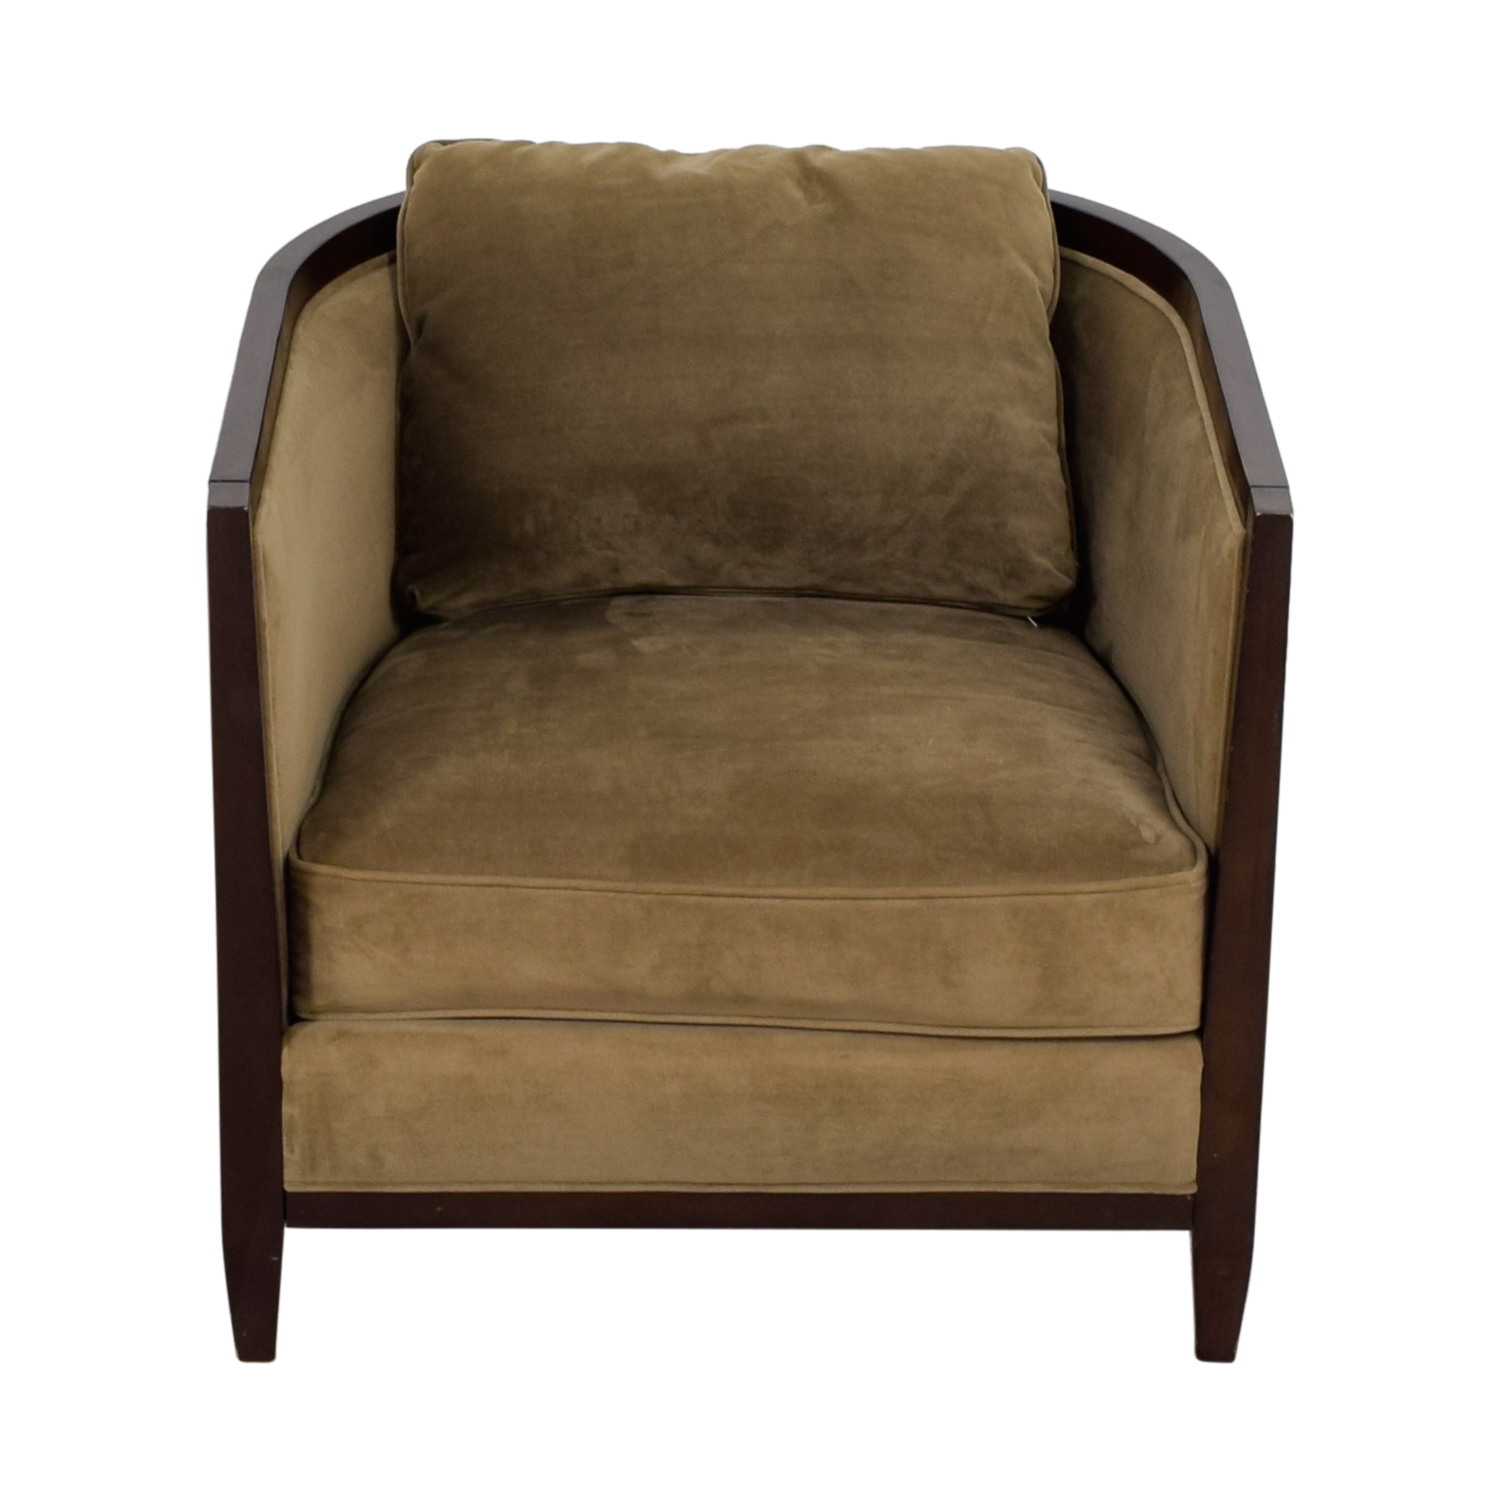 shop Bloomingdale's Bloomingdale's Beige Upholstered Wood Accent Chair online